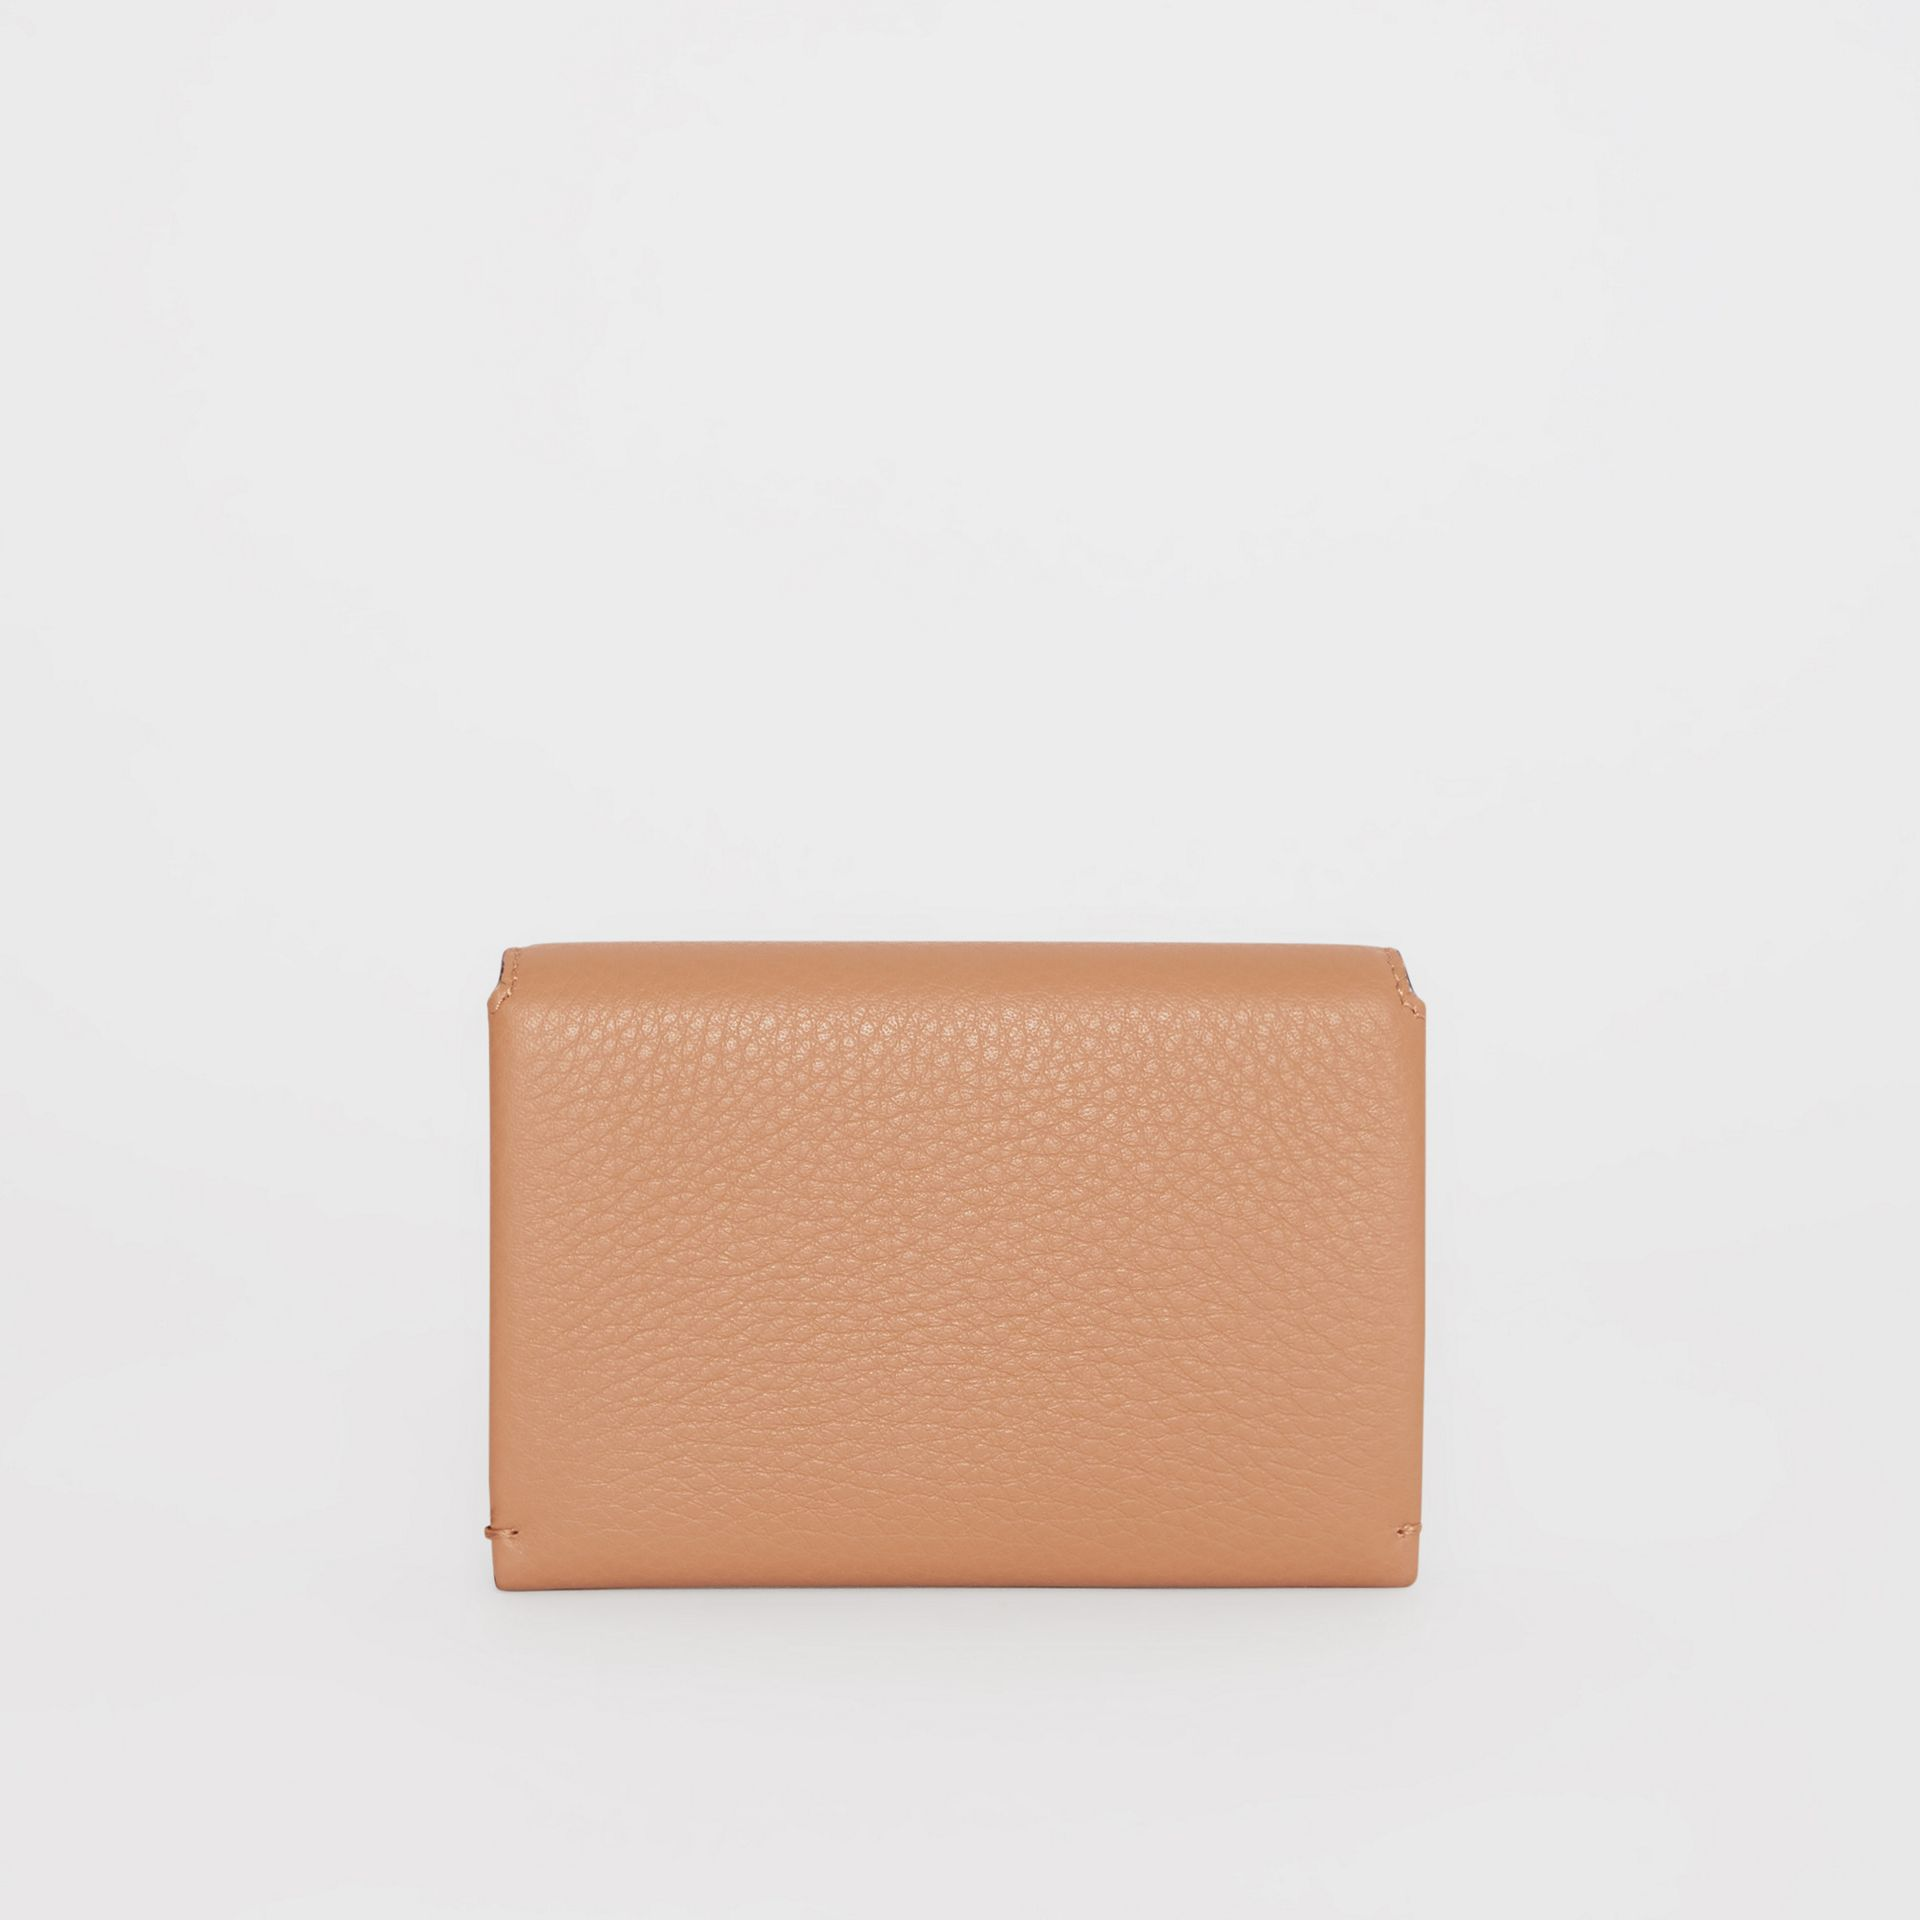 Triple Stud Leather Folding Wallet in Light Camel - Women | Burberry United Kingdom - gallery image 4